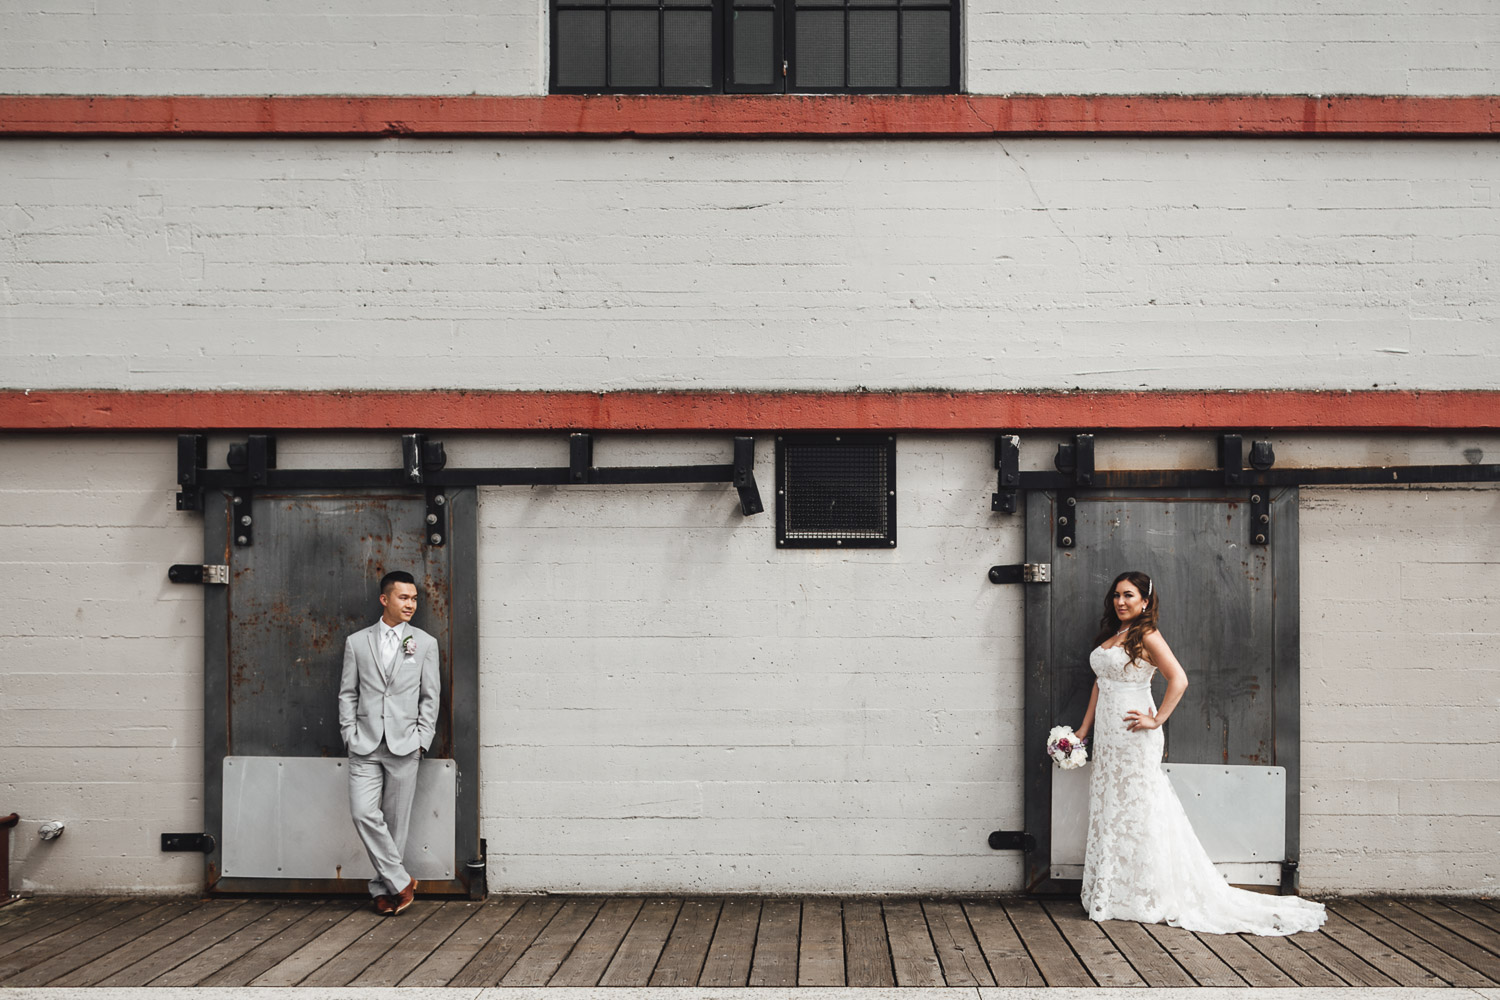 Londsdale pier in north vancouver wedding photography bride and groom